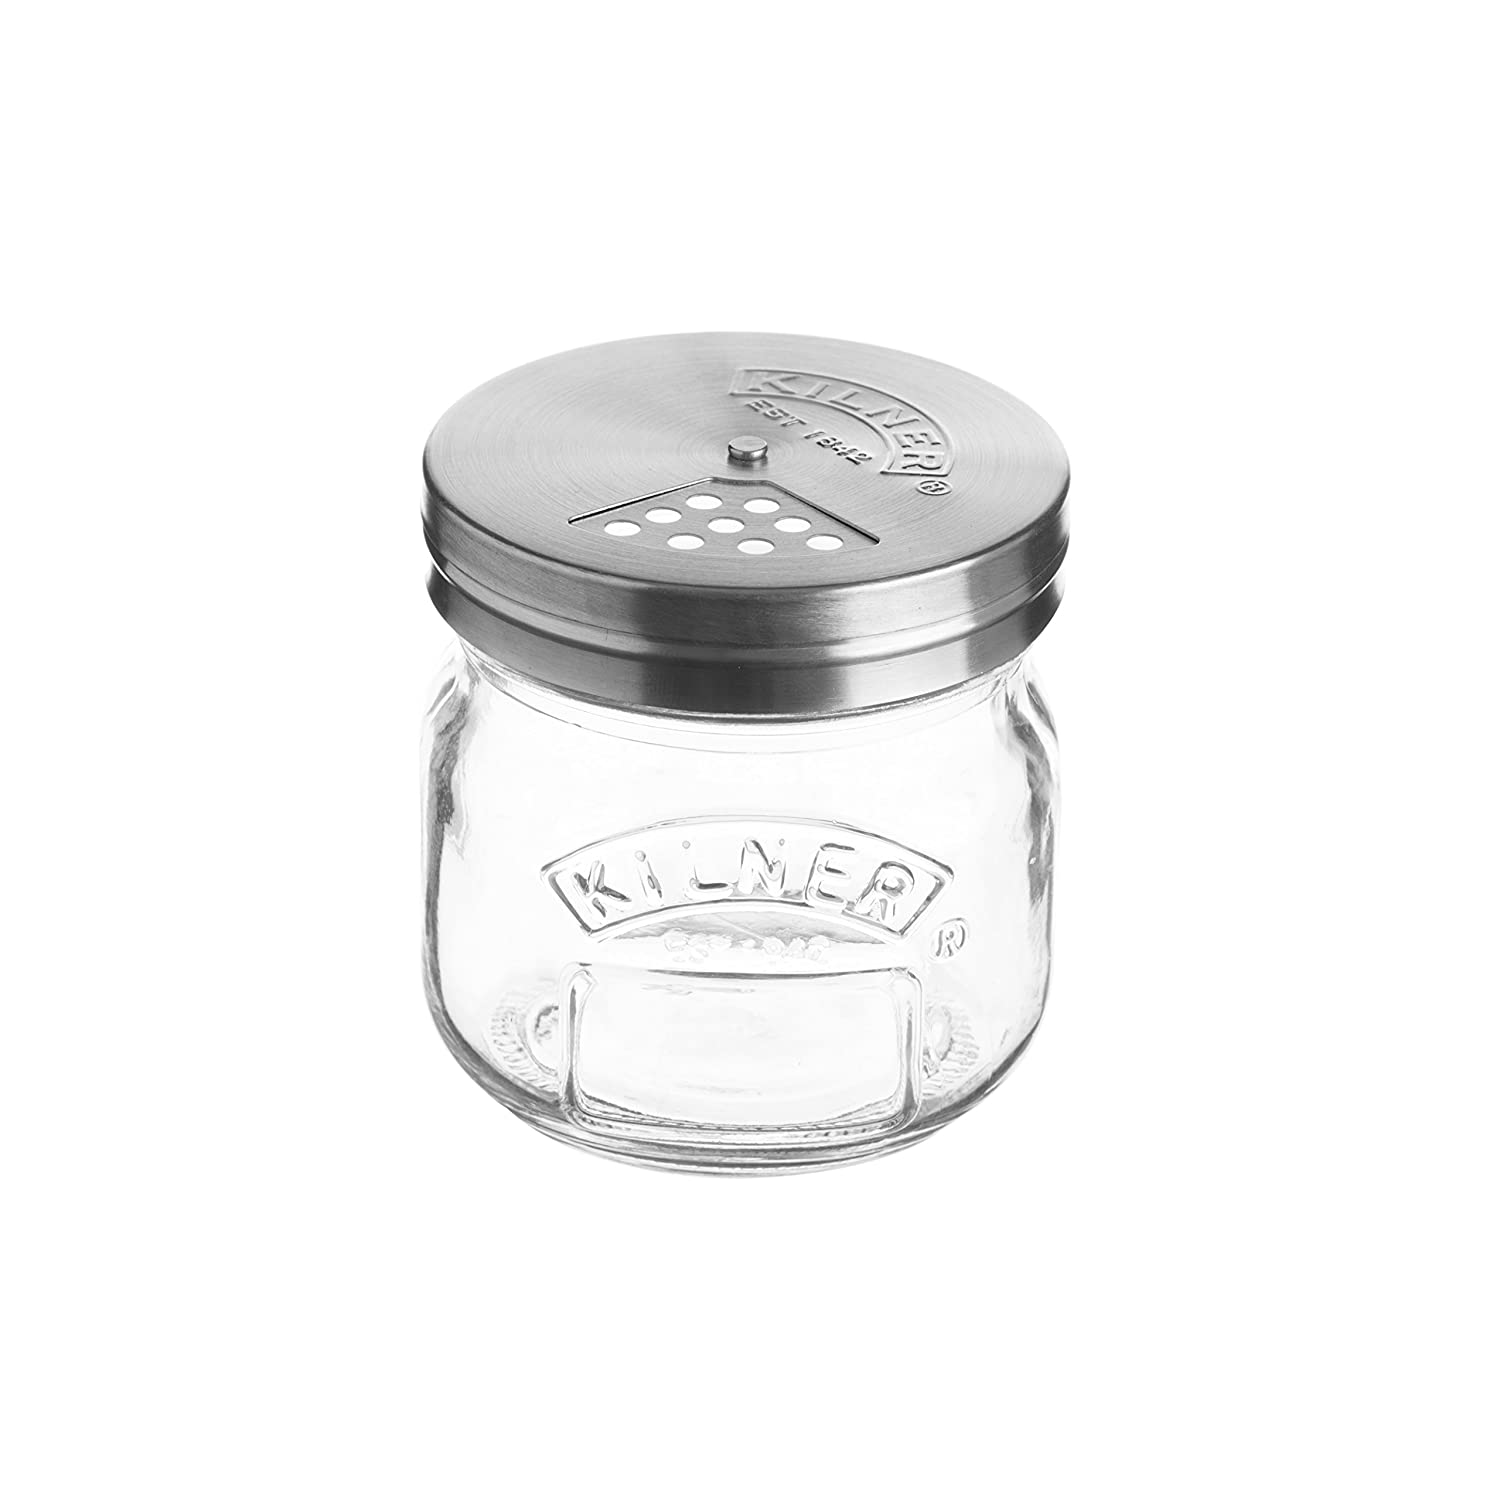 Kilner Shaker Jar 250ml - Vintage Style Condiment Shaker for Parmesan Cheese, Herbs and Spices 38-2056-00